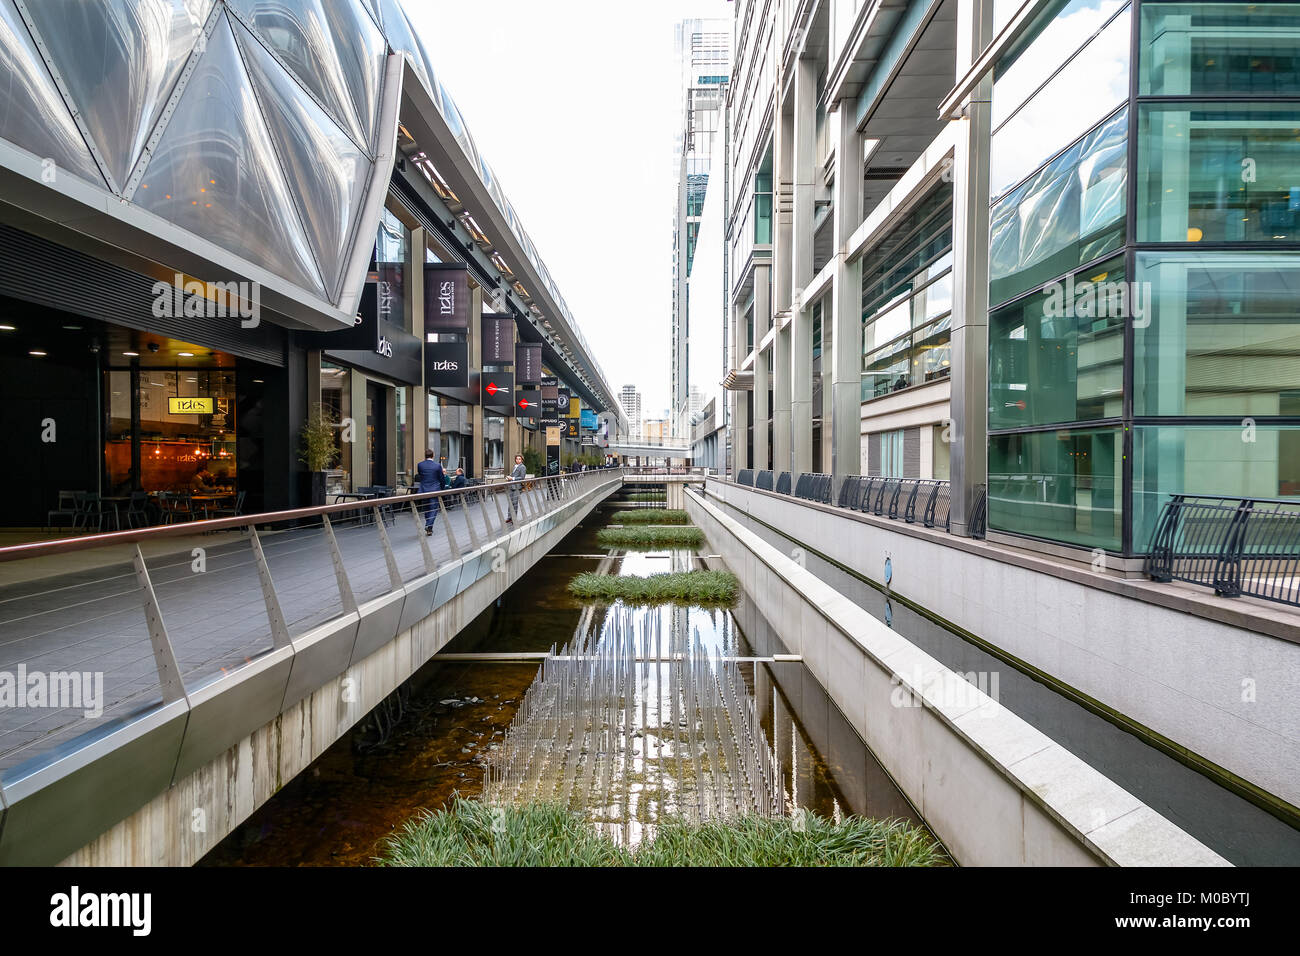 London, UK - November 25, 2017 - Restaurants and shops at Crossrail Place in Canary Wharf - Stock Image